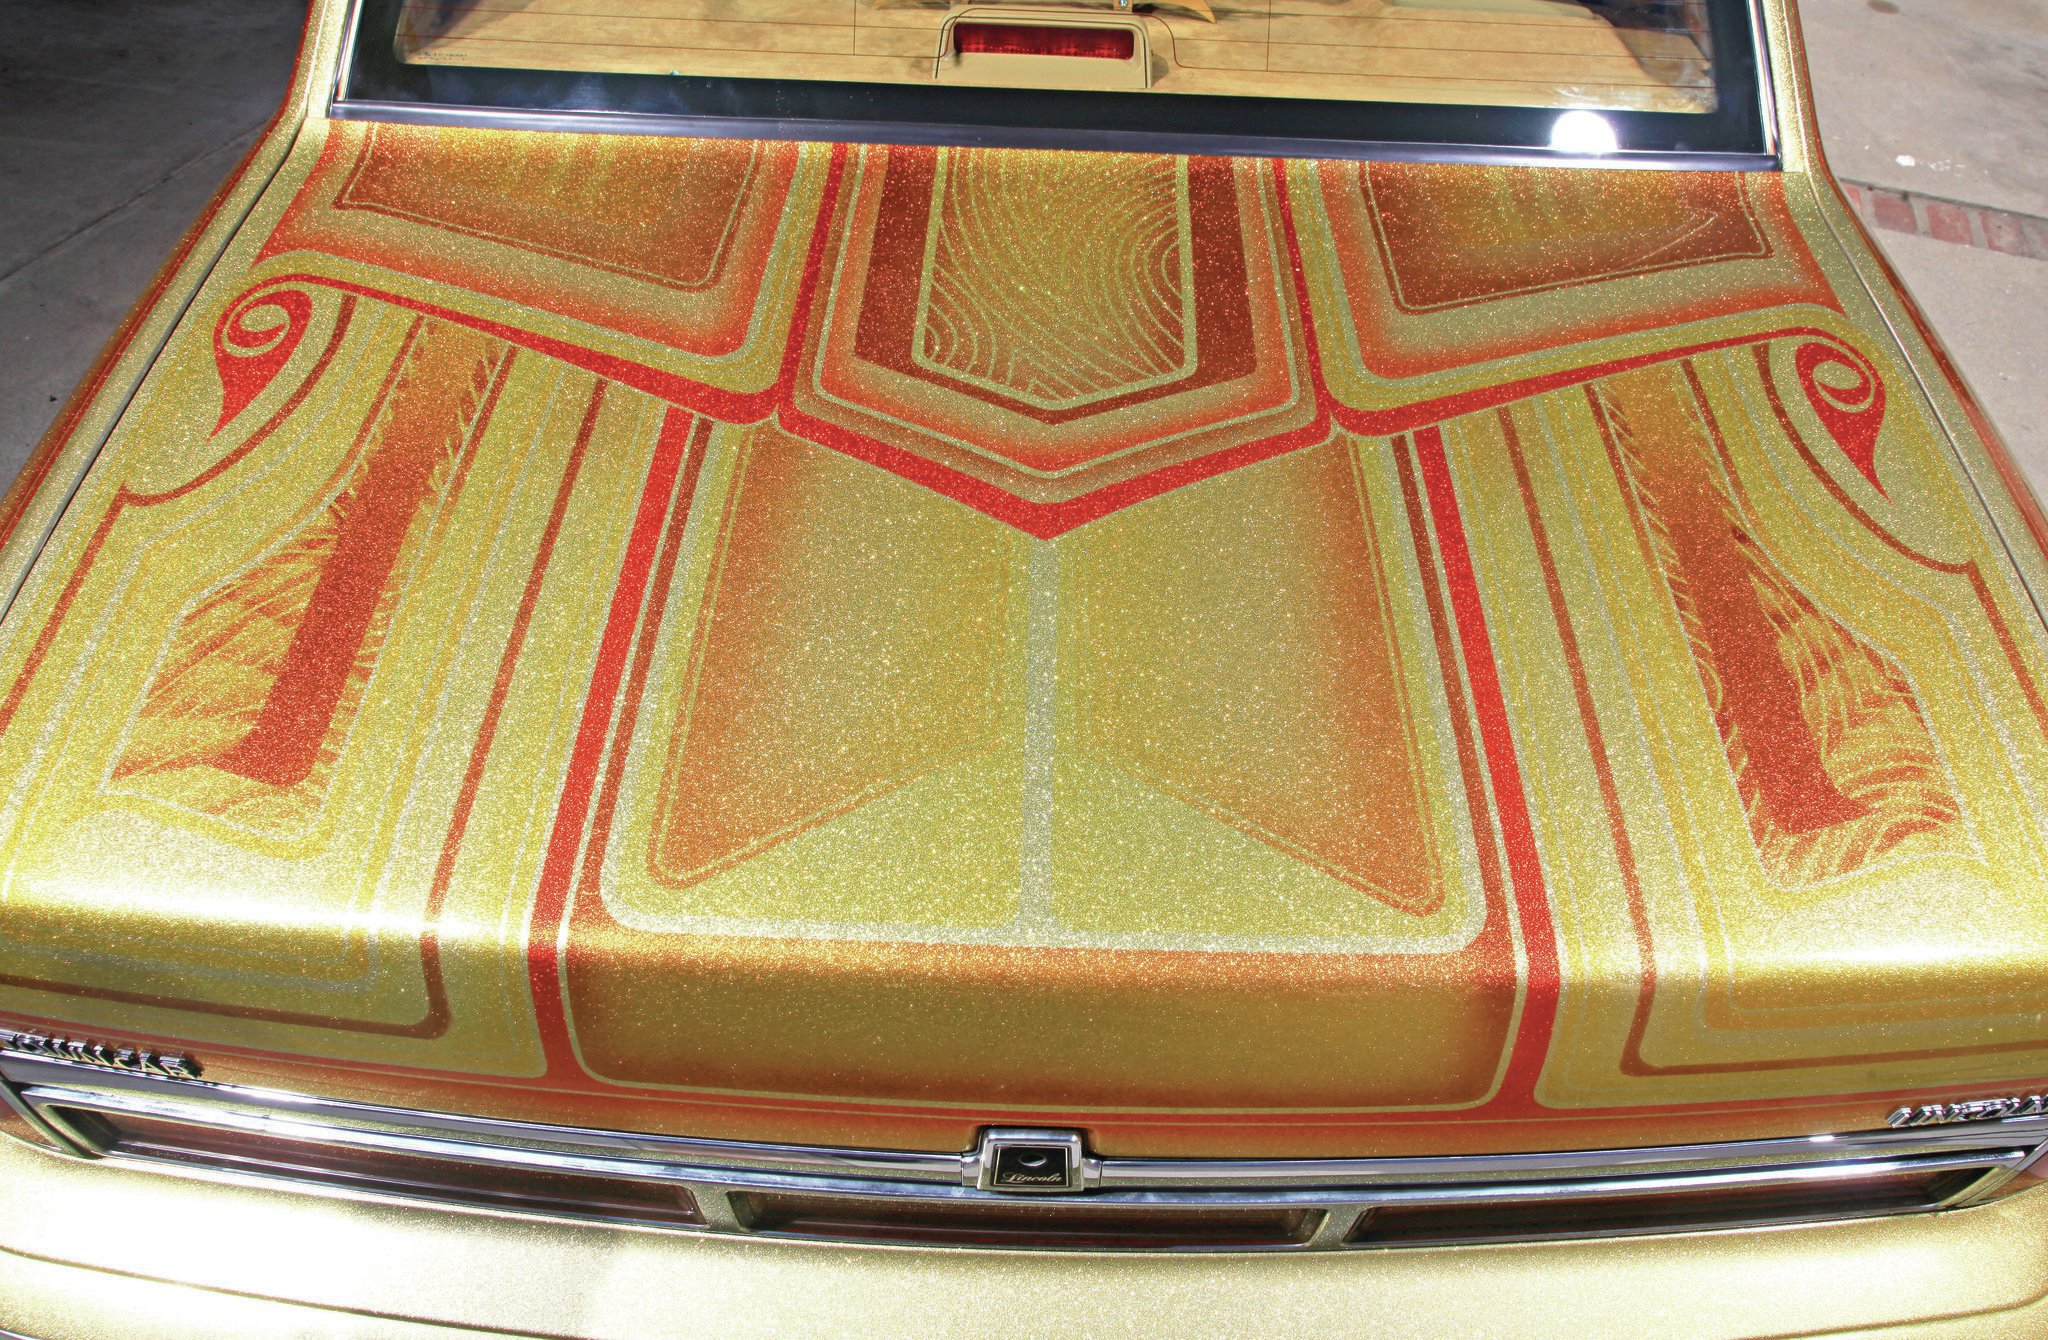 1997 Lincoln Town Car Custom Trunk Lid 08 Lowrider